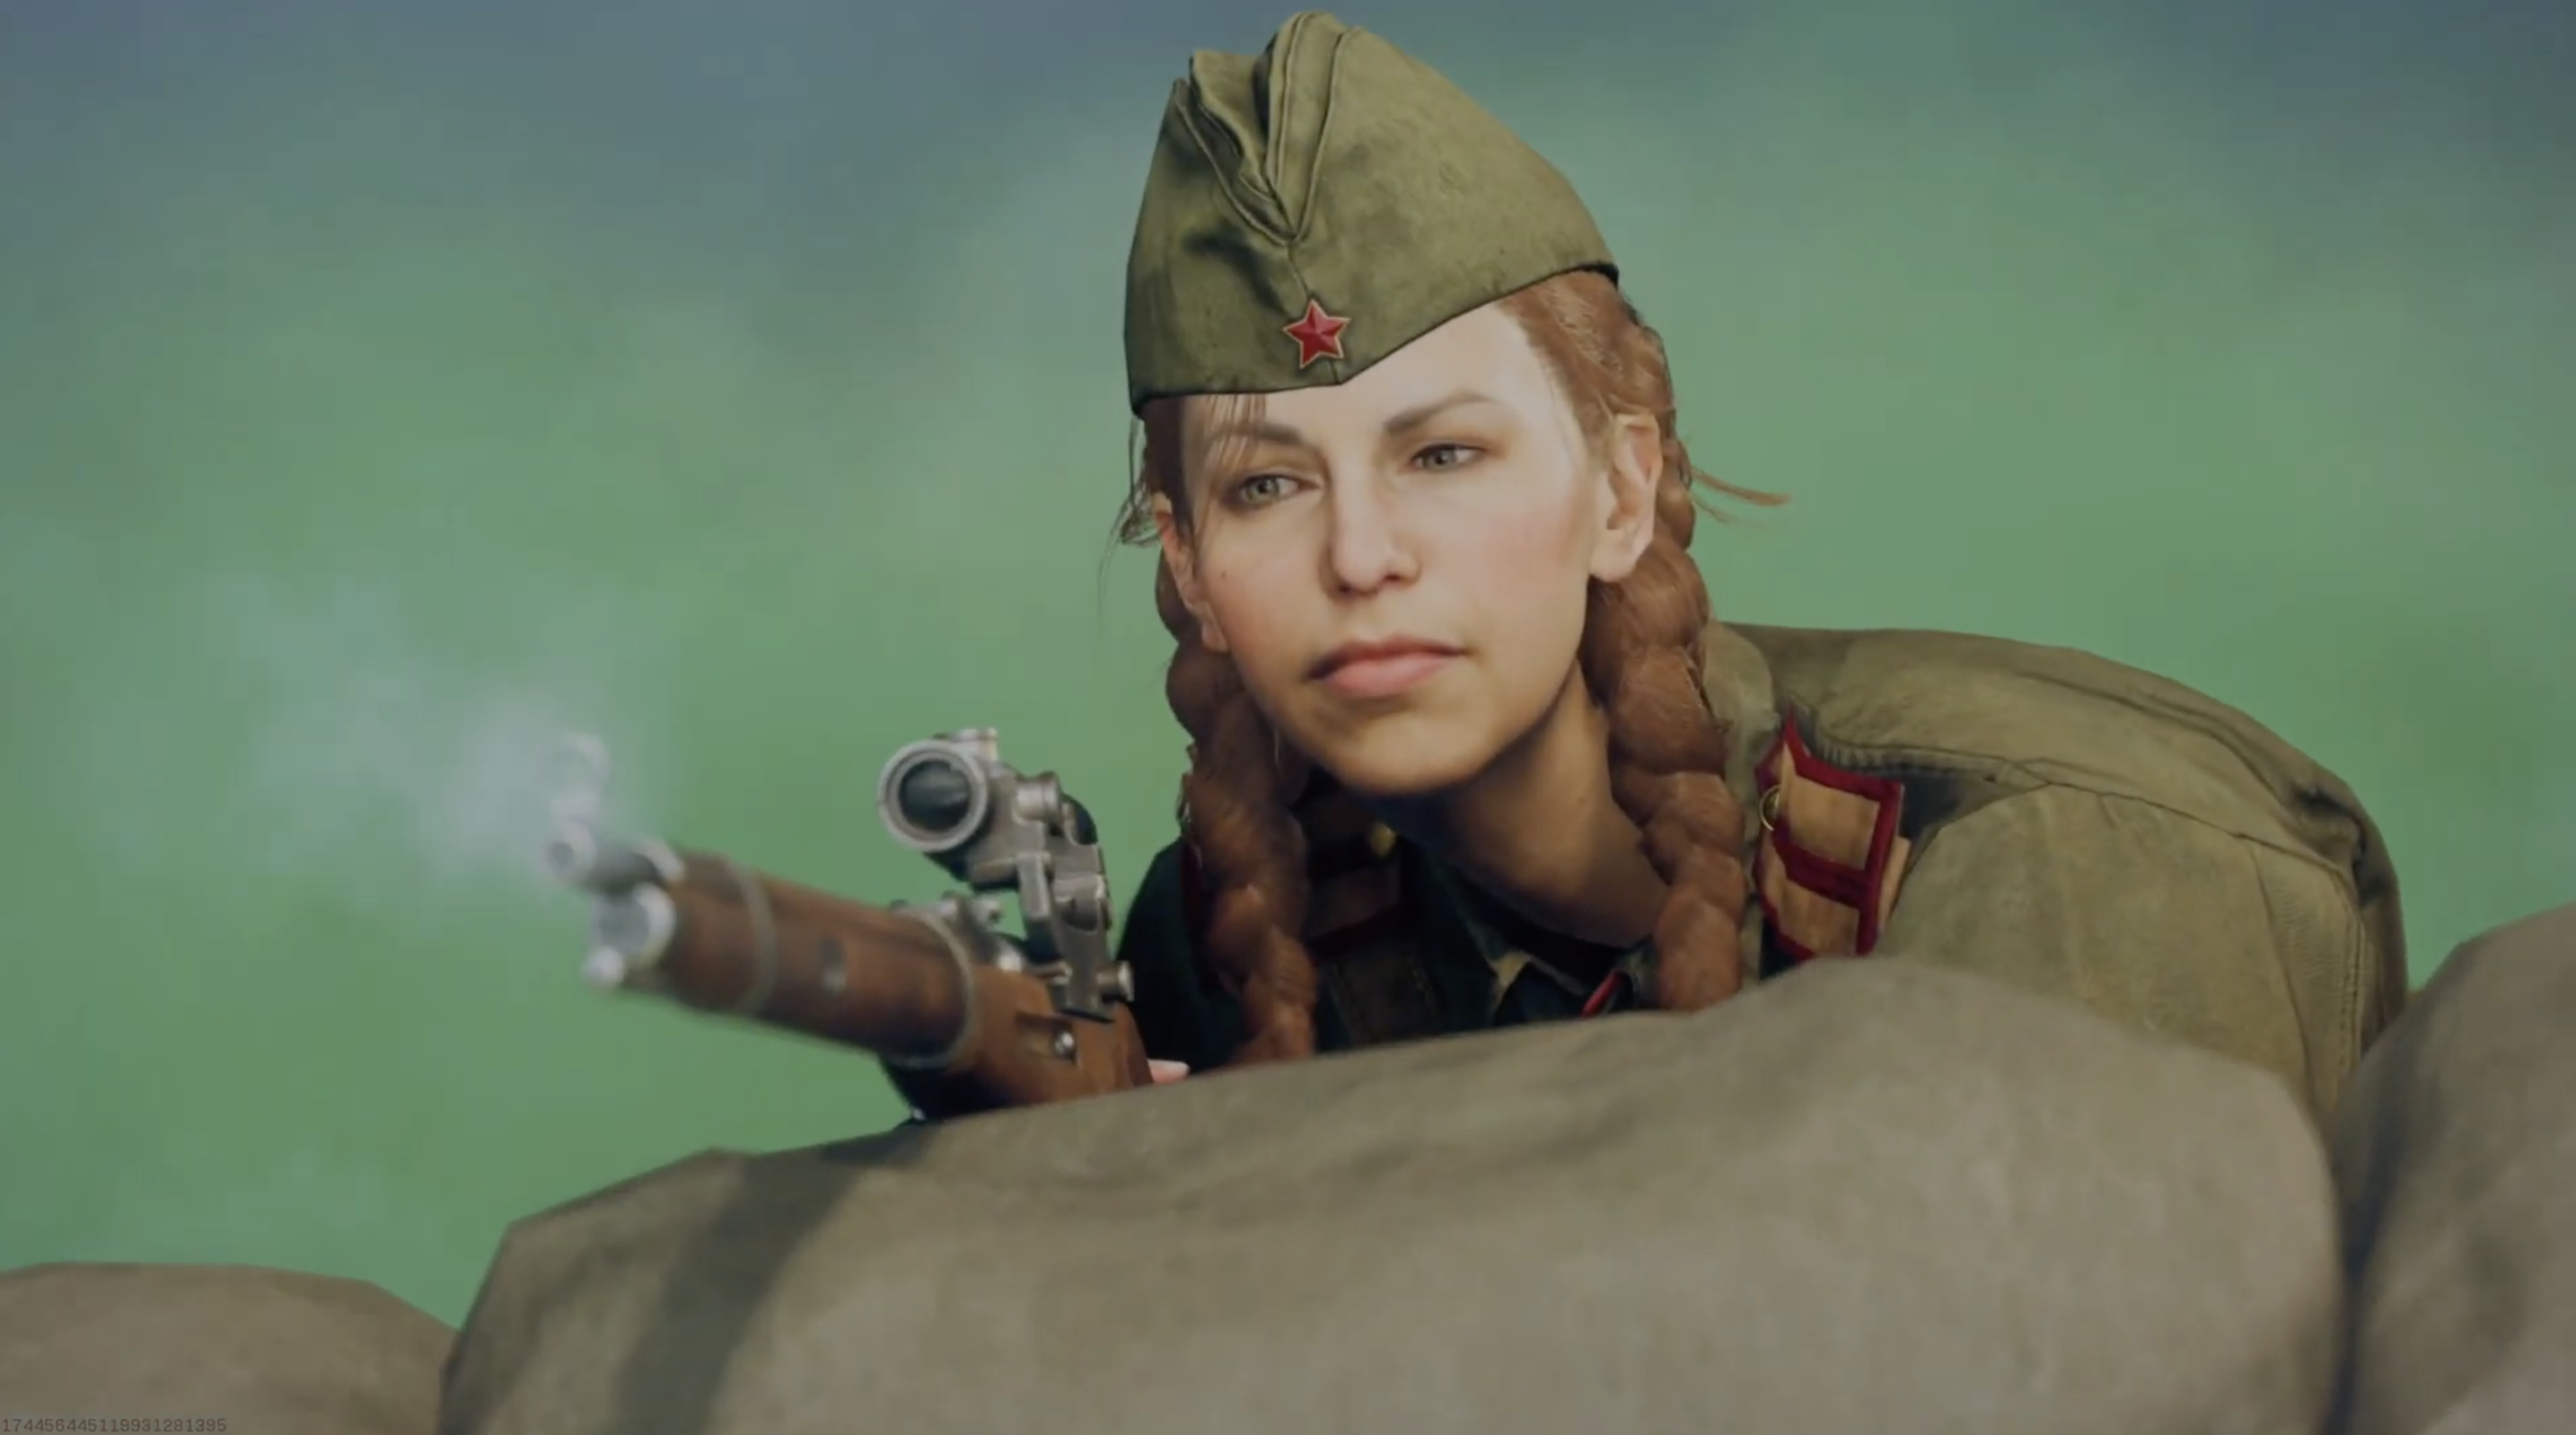 a redhead woman in a Soviet World War II uniform looks over after shooting someone. her rifle emits smoke after shooting